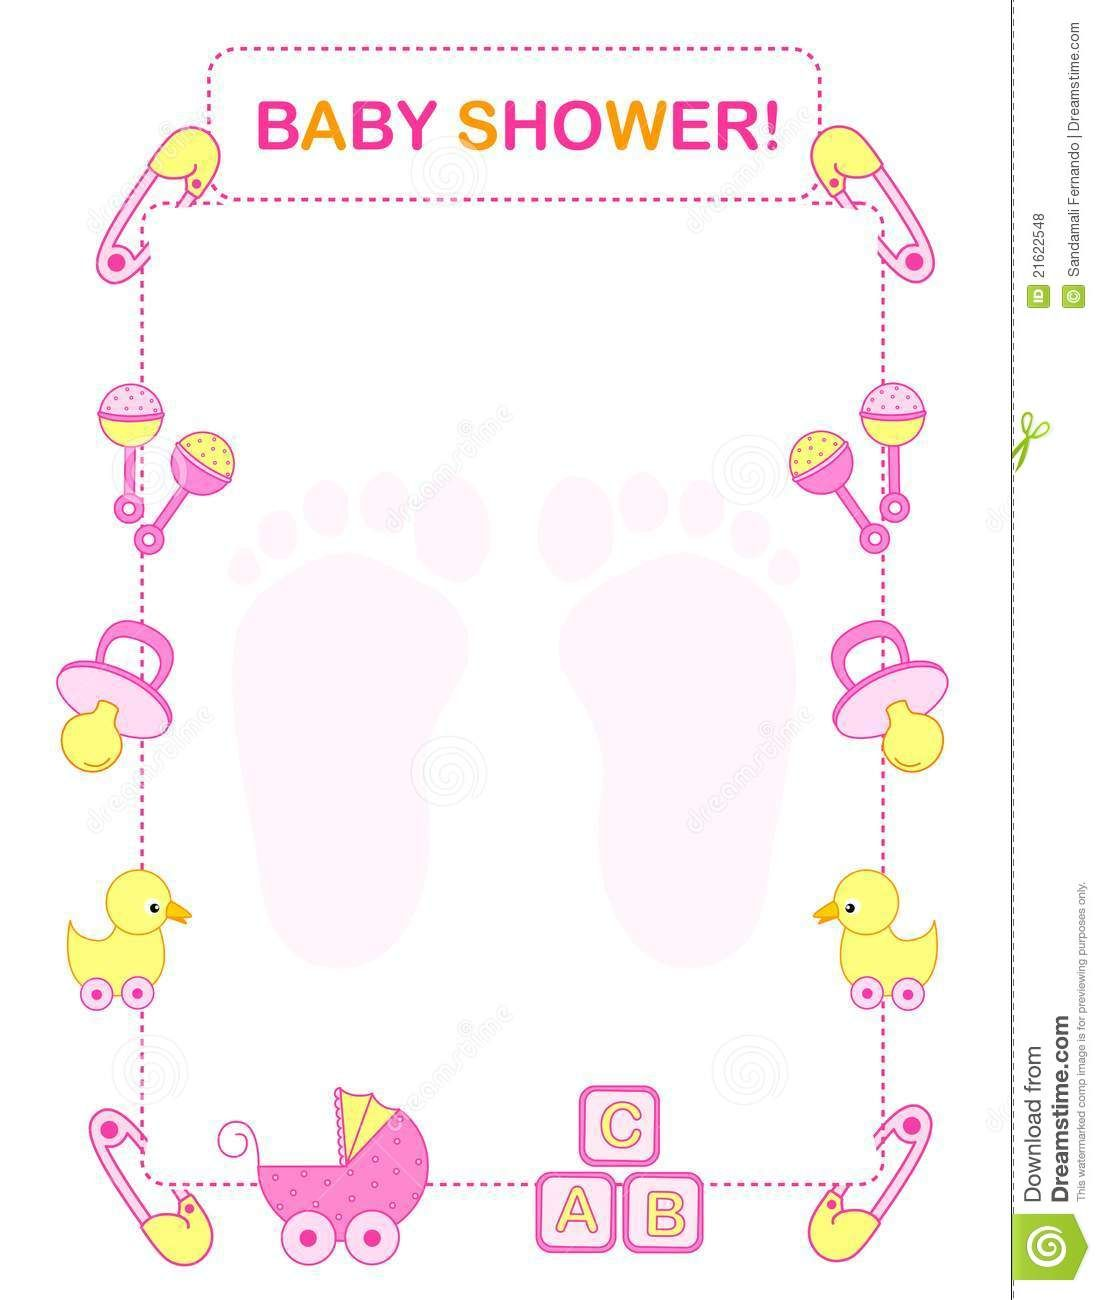 Free Printable Baby Shower Clip Art 59 Baby Shower In 2019